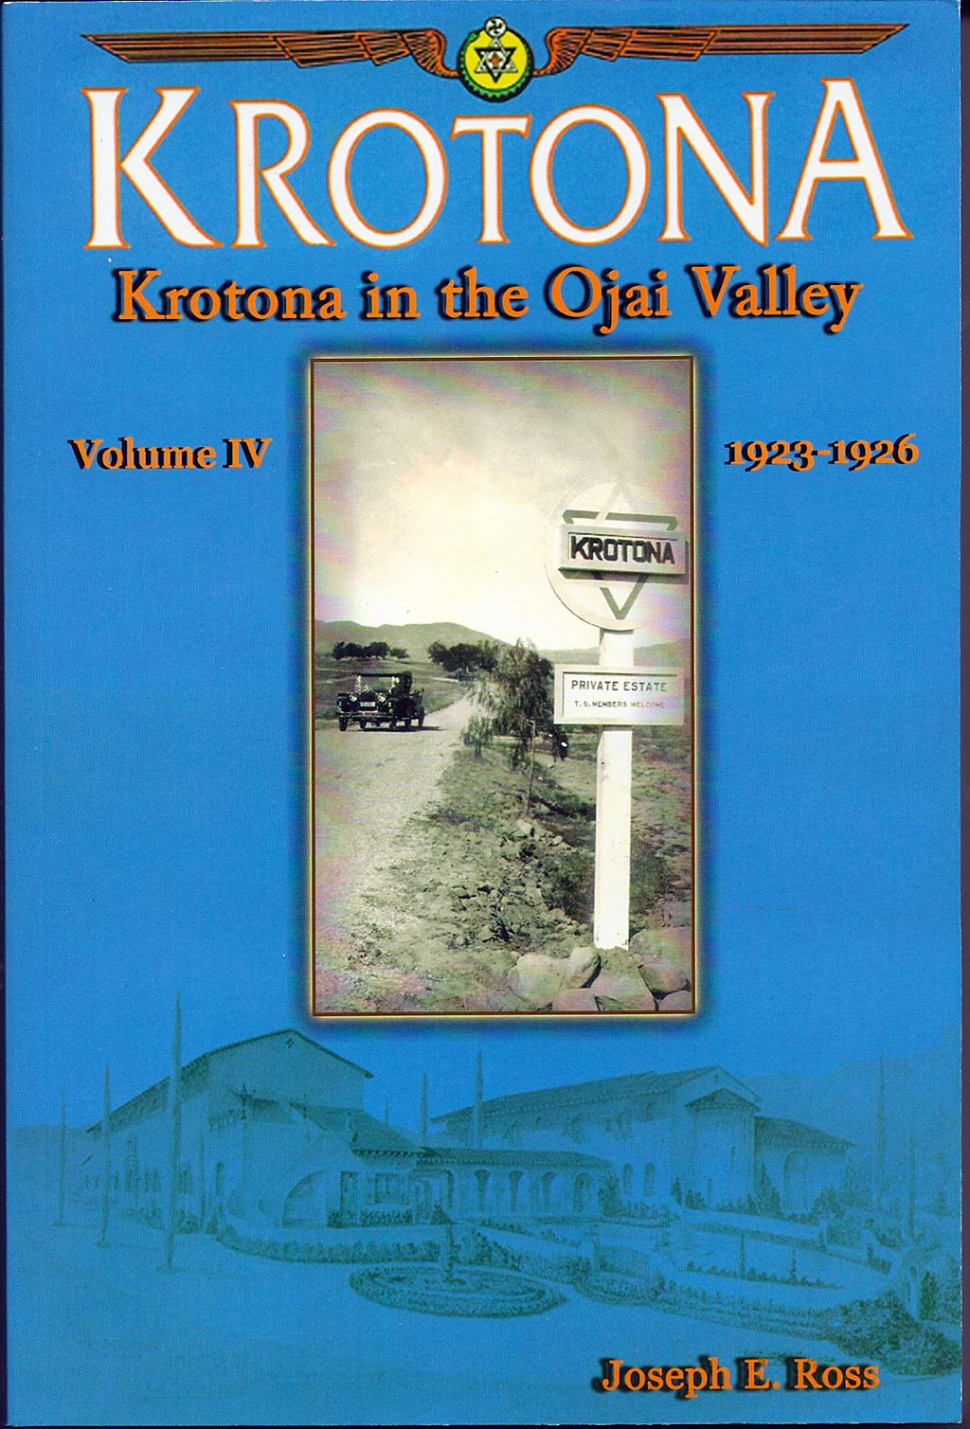 Krotona in the Ojai Valley